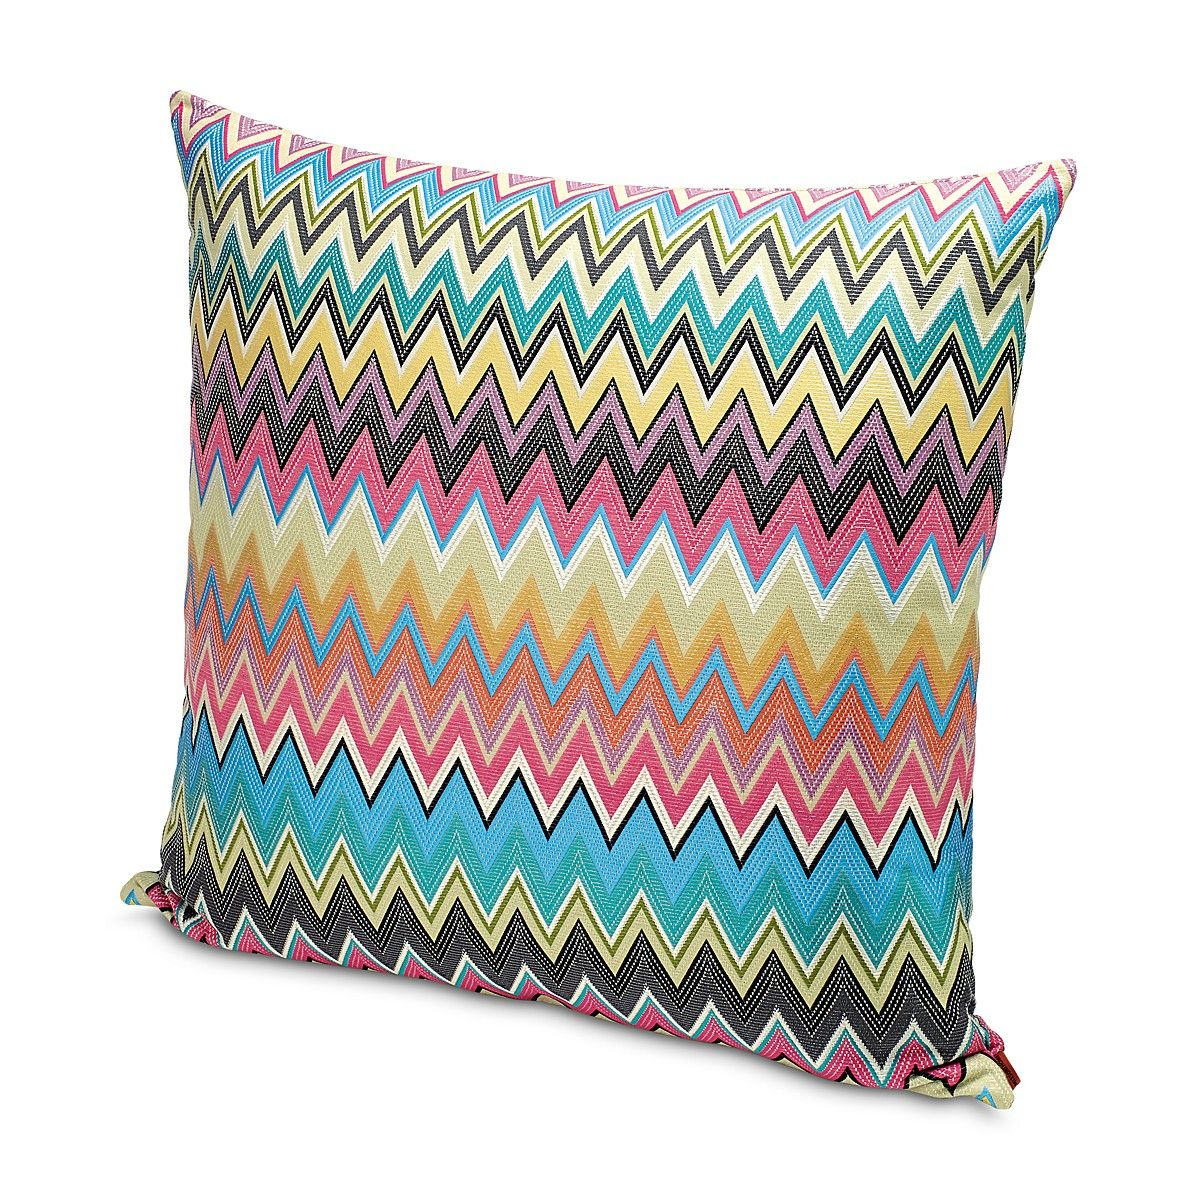 Missoni Vinci Decorative Pillow 20 X 20 Pillows Cushion Design